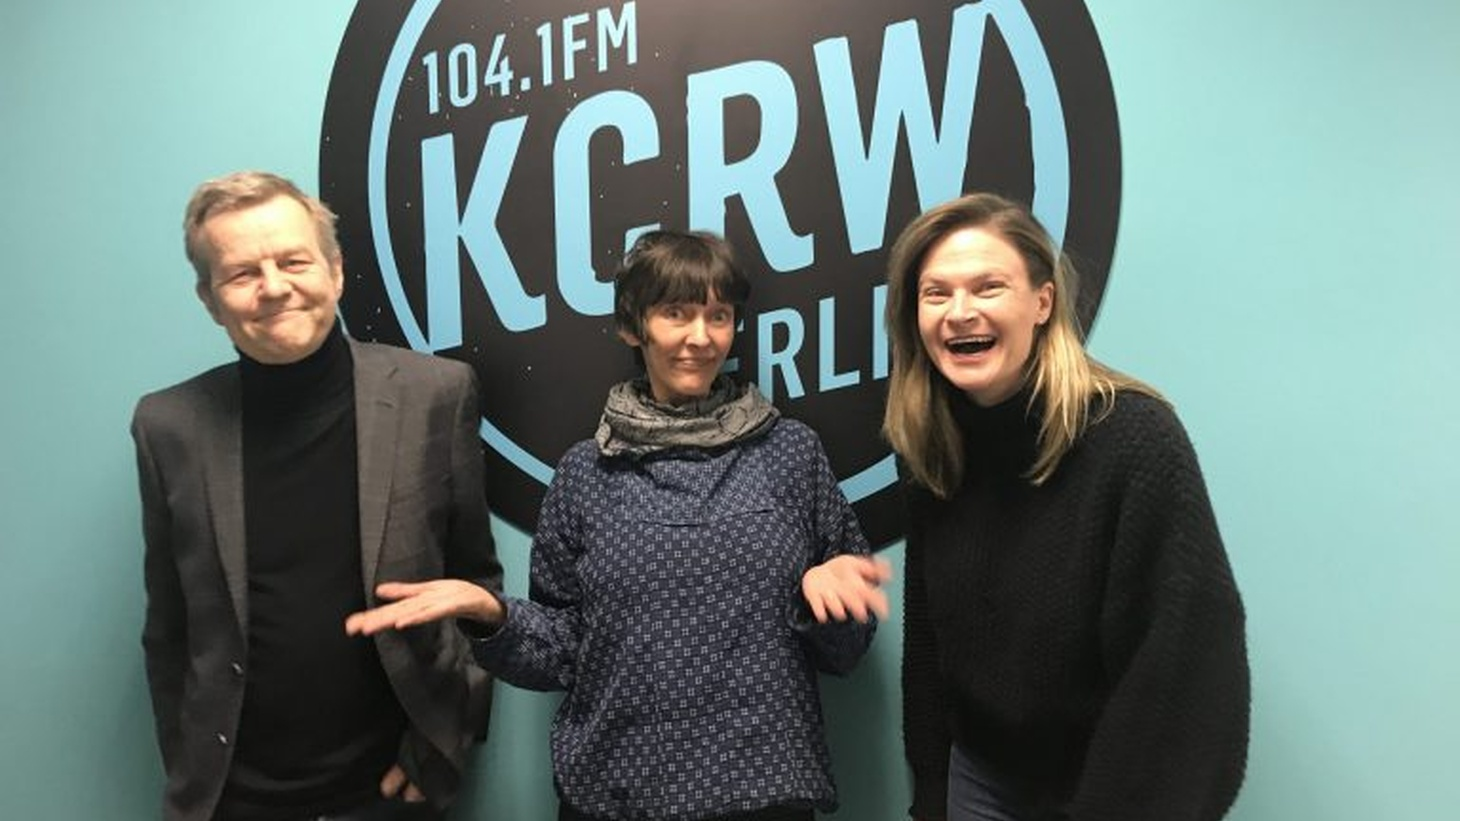 Monika Müller-Kroll with Tom Dorow and Meredith Burkholder.